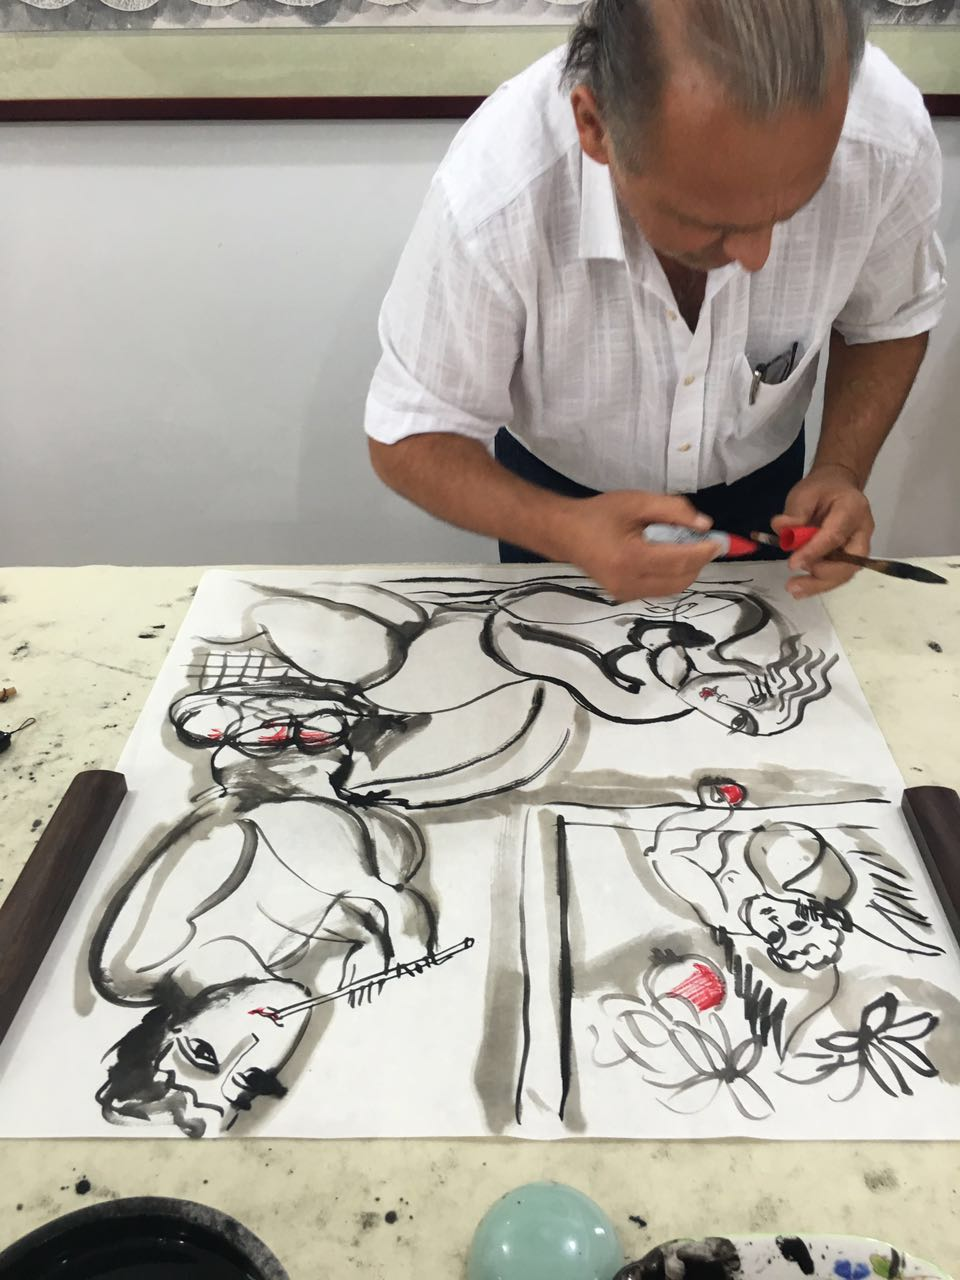 Yuroz working with chinese calligraphy brushes and ink